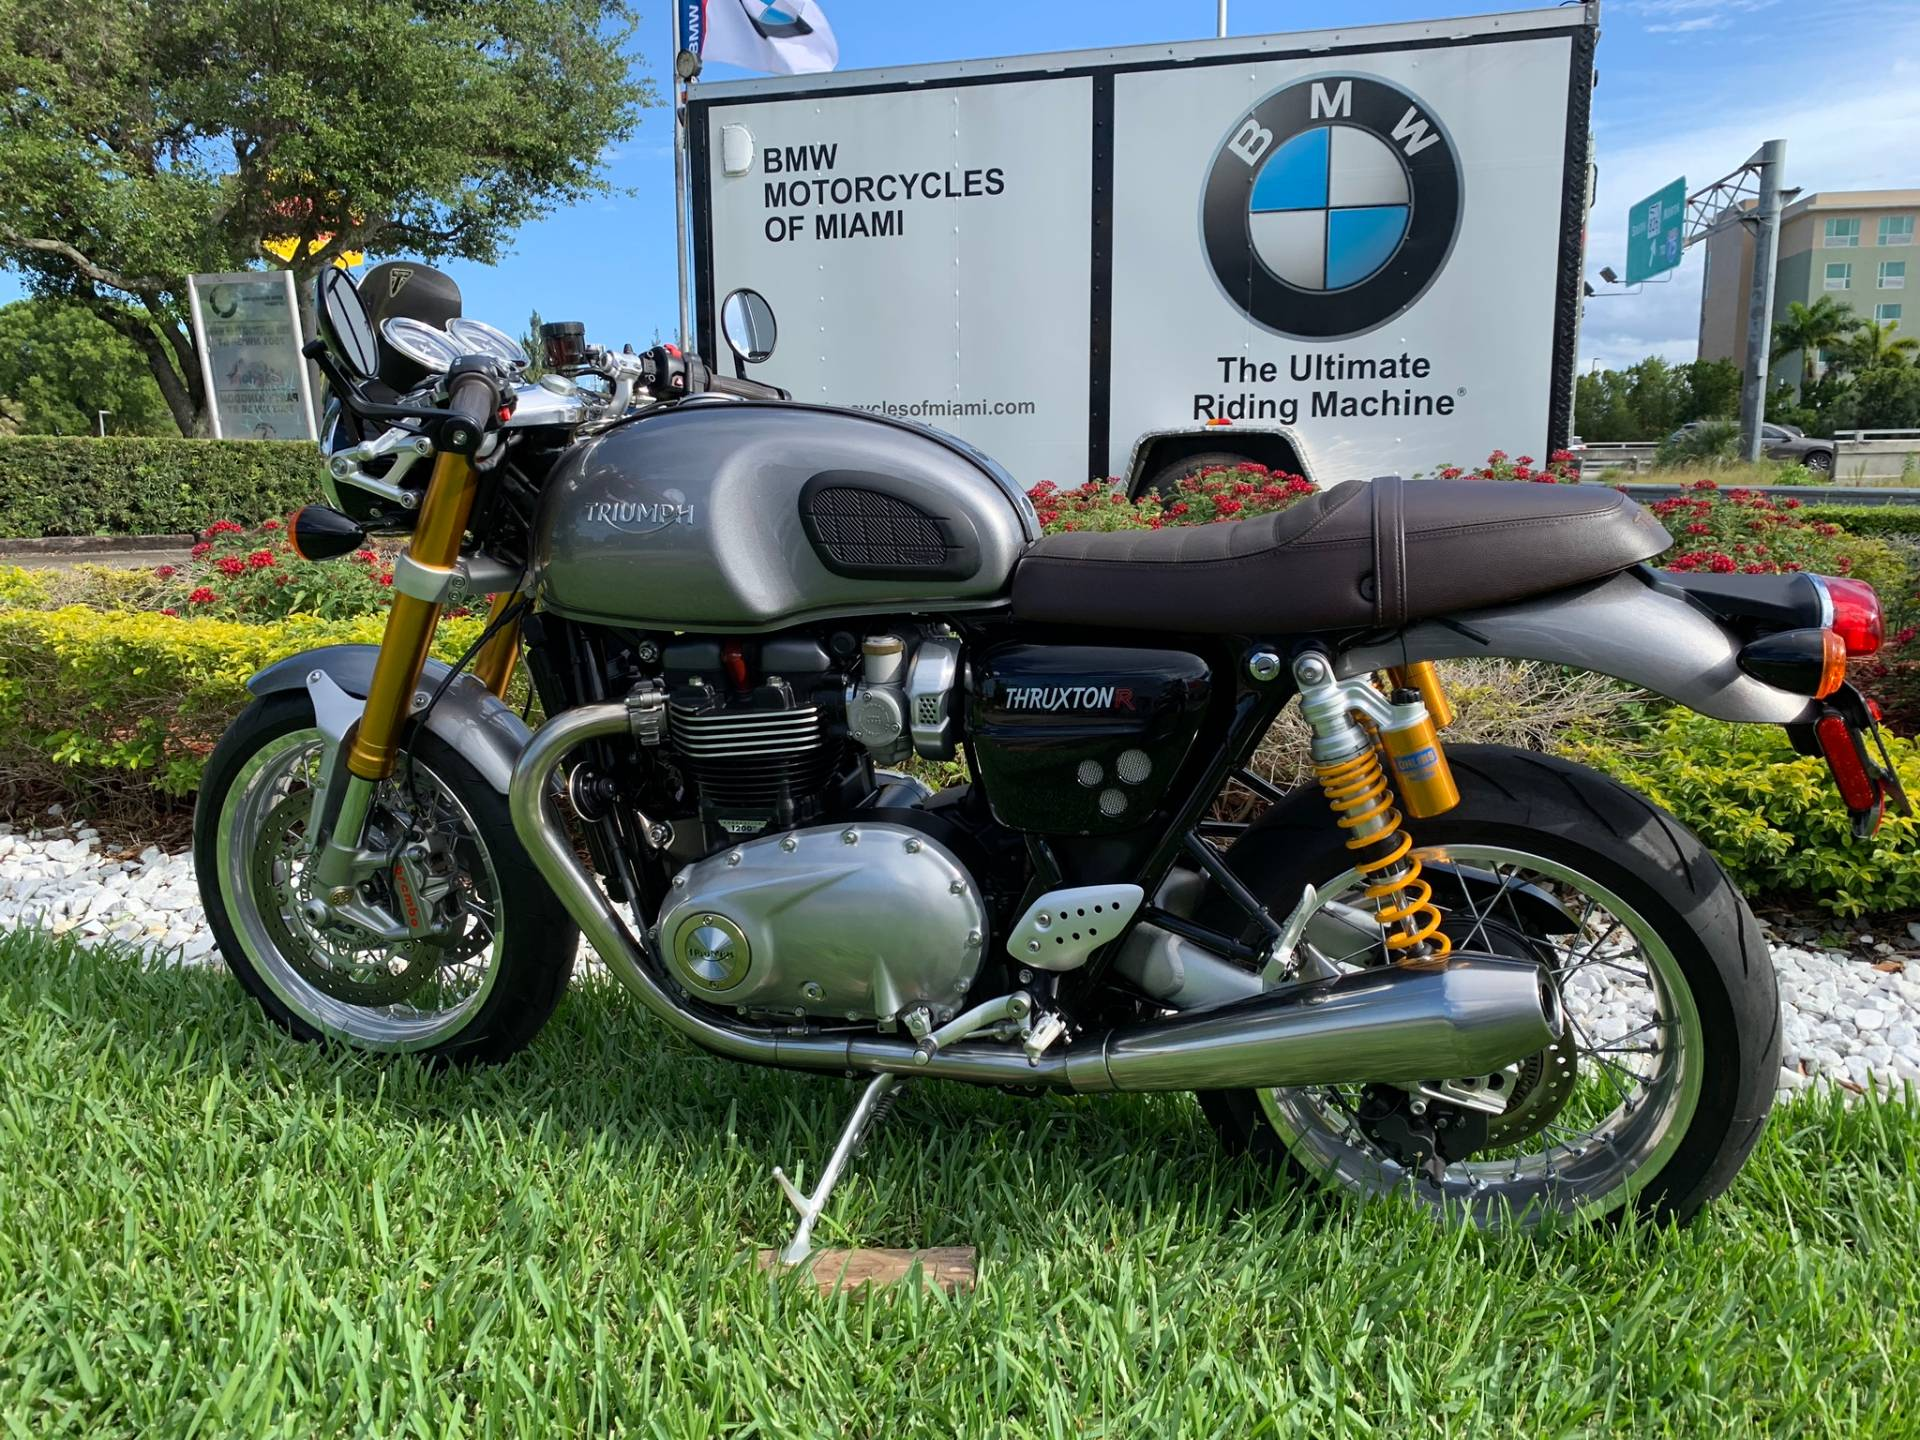 Used 2016 Triumph Thruxton 1200 R for sale,  2016 Triumph Thruxton 1200R for sale,  Triumph Thruxton1200R,  Used ThruxtonR, Cafe. Cruiser, BMW Motorcycles of Miami, Motorcycles of Miami, Motorcycles Miami, New Motorcycles, Used Motorcycles, pre-owned. #BMWMotorcyclesOfMiami #MotorcyclesOfMiami #Moto - Photo 8